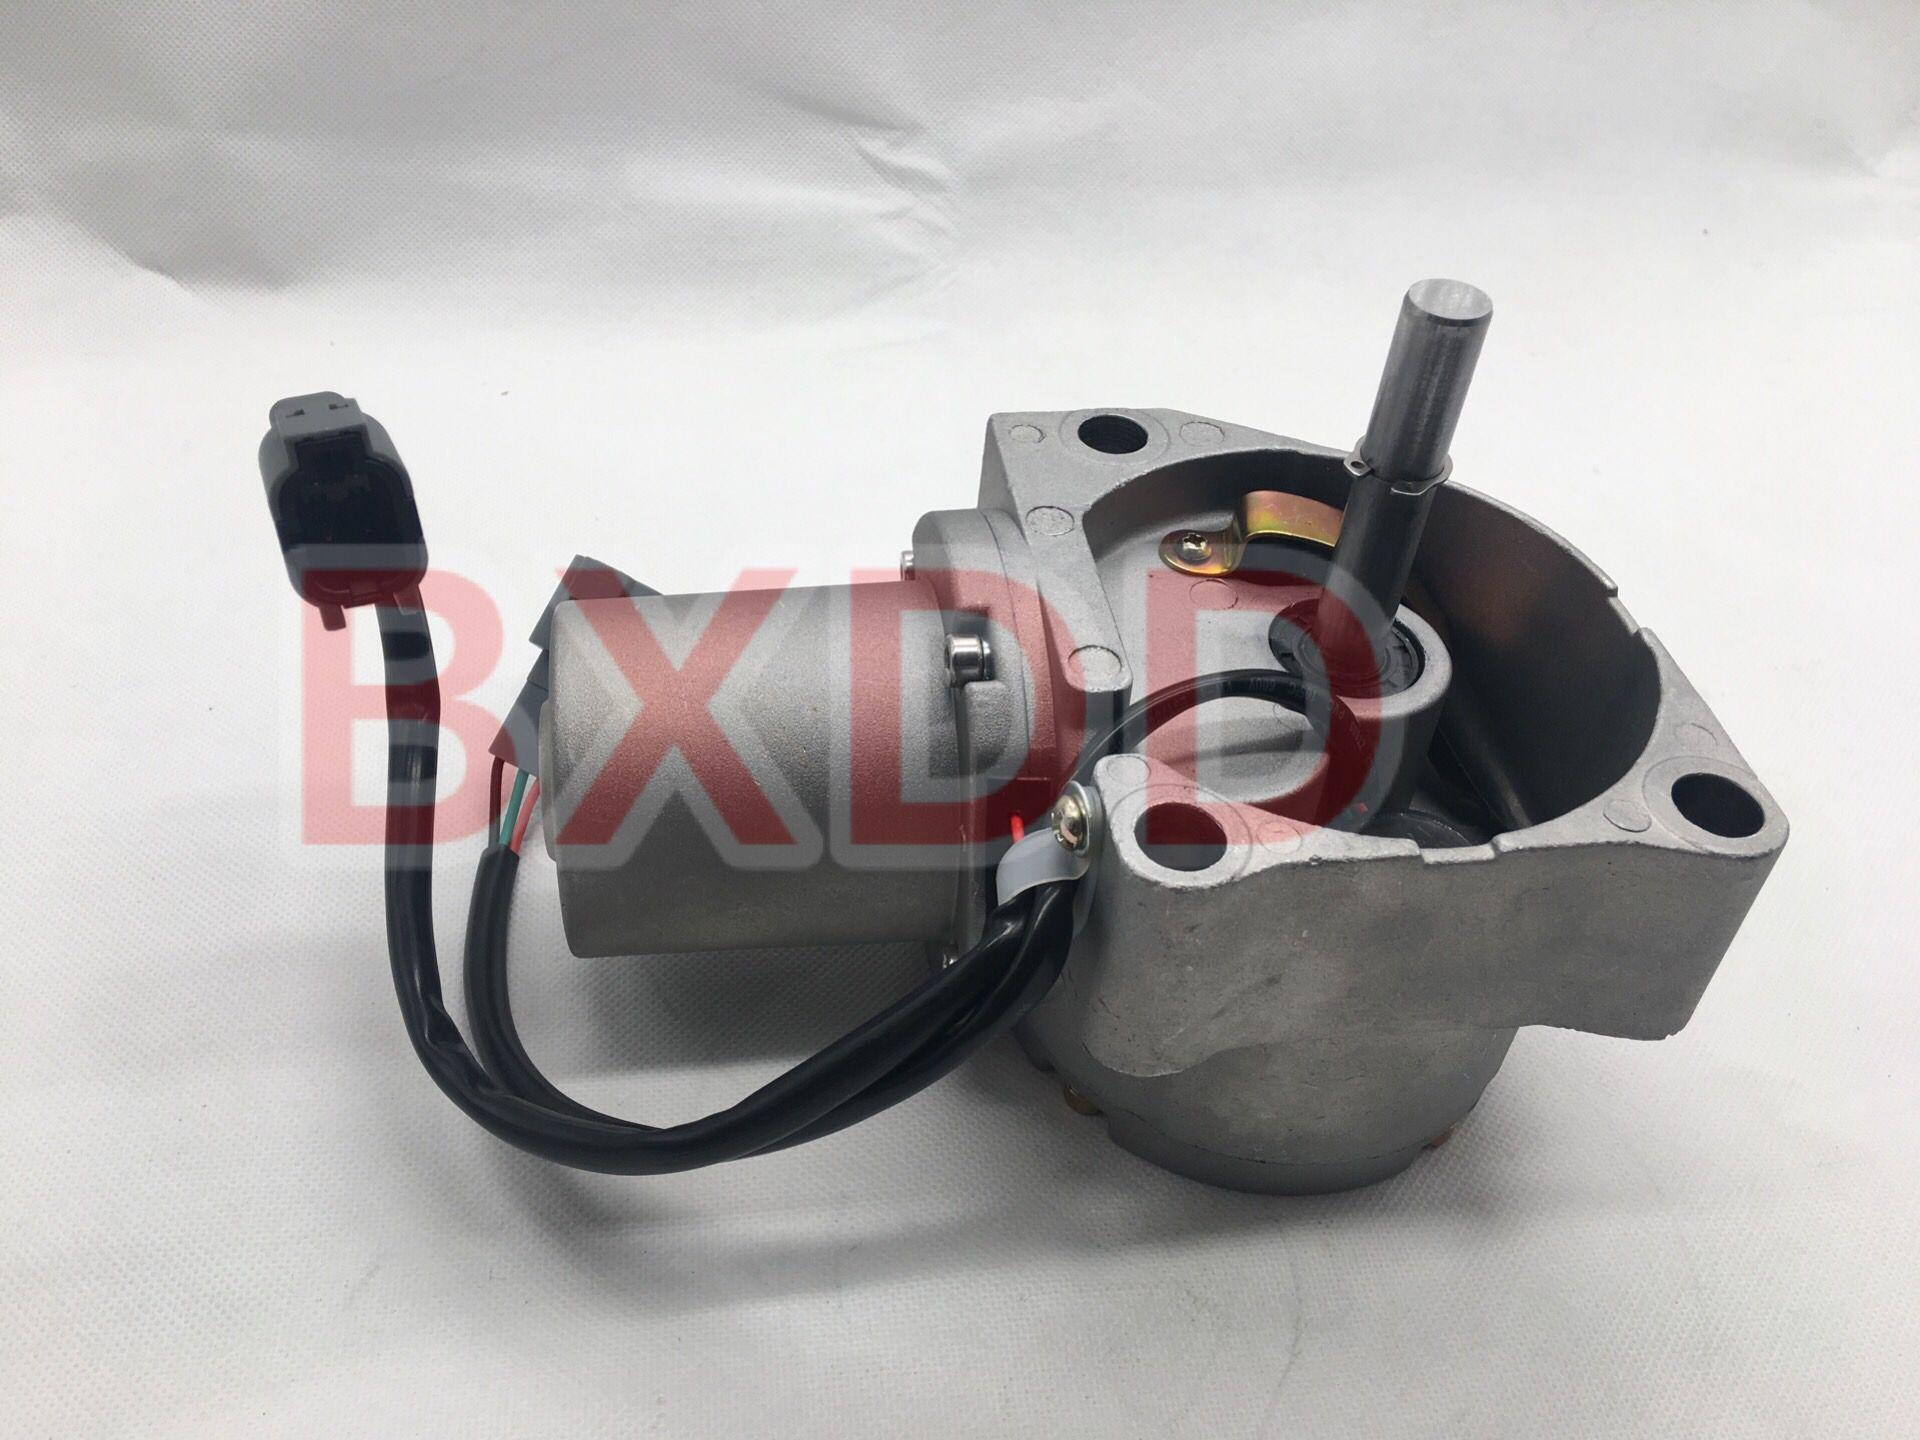 EX300-5 Hitachi 굴삭기 Throttle Motor 4360509 4614911 EX200-6 Hitachi 굴삭기 스로틀 모터 EX200-5